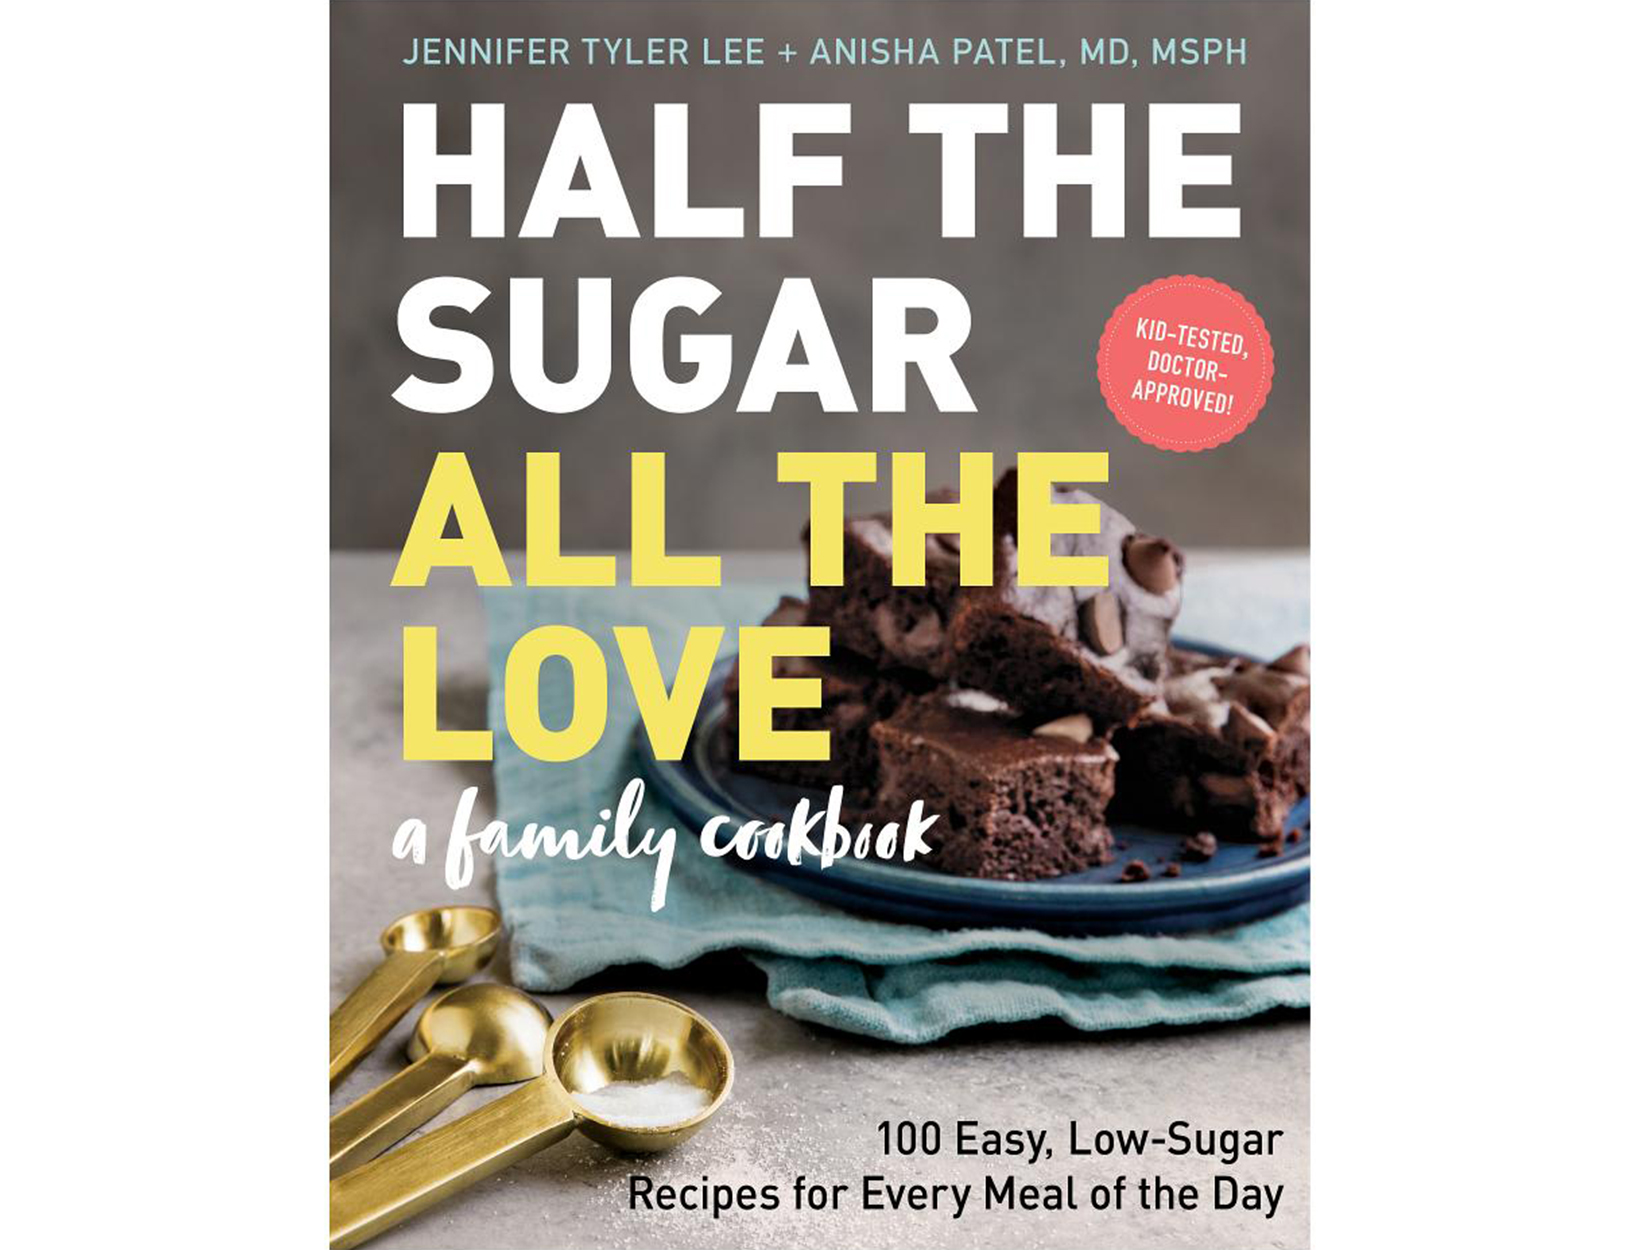 <em>Half the Sugar All the Love</em> by Jennifer Tyler Lee and Anisha Patel, MD, MSPH